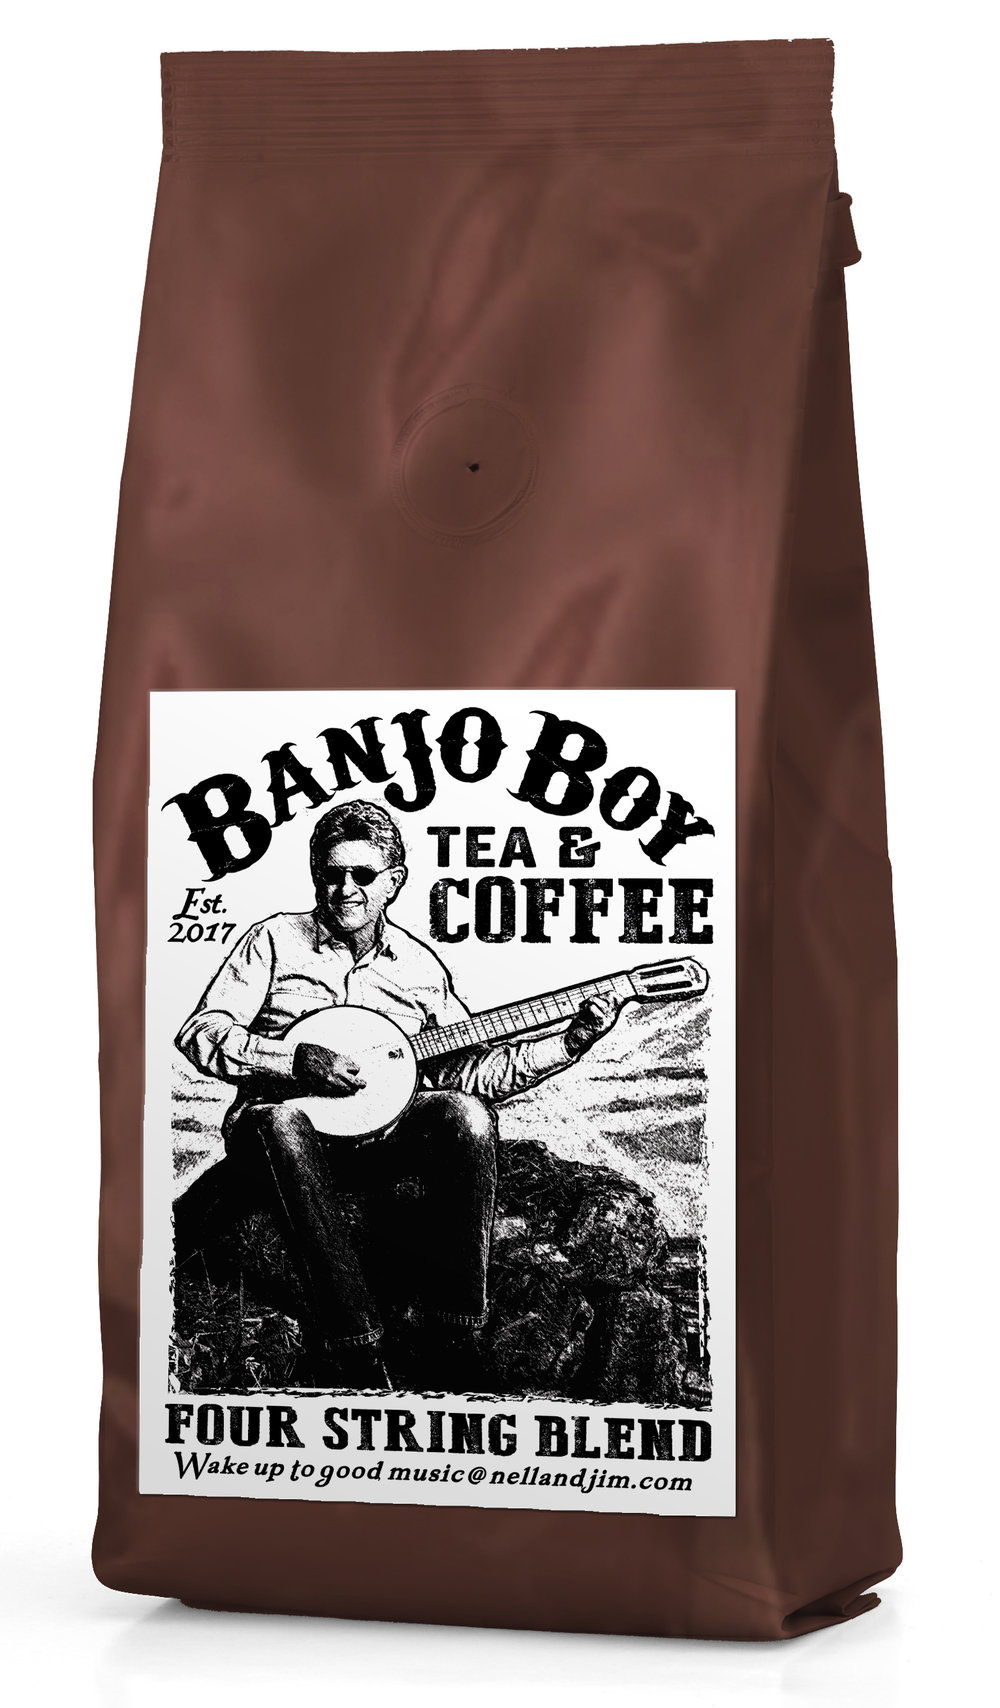 Four String Blend - This light roast blend has the classic Kona flavor profile, taste the air and smell the sea 'round the islands, bright overtones with hues of honey.